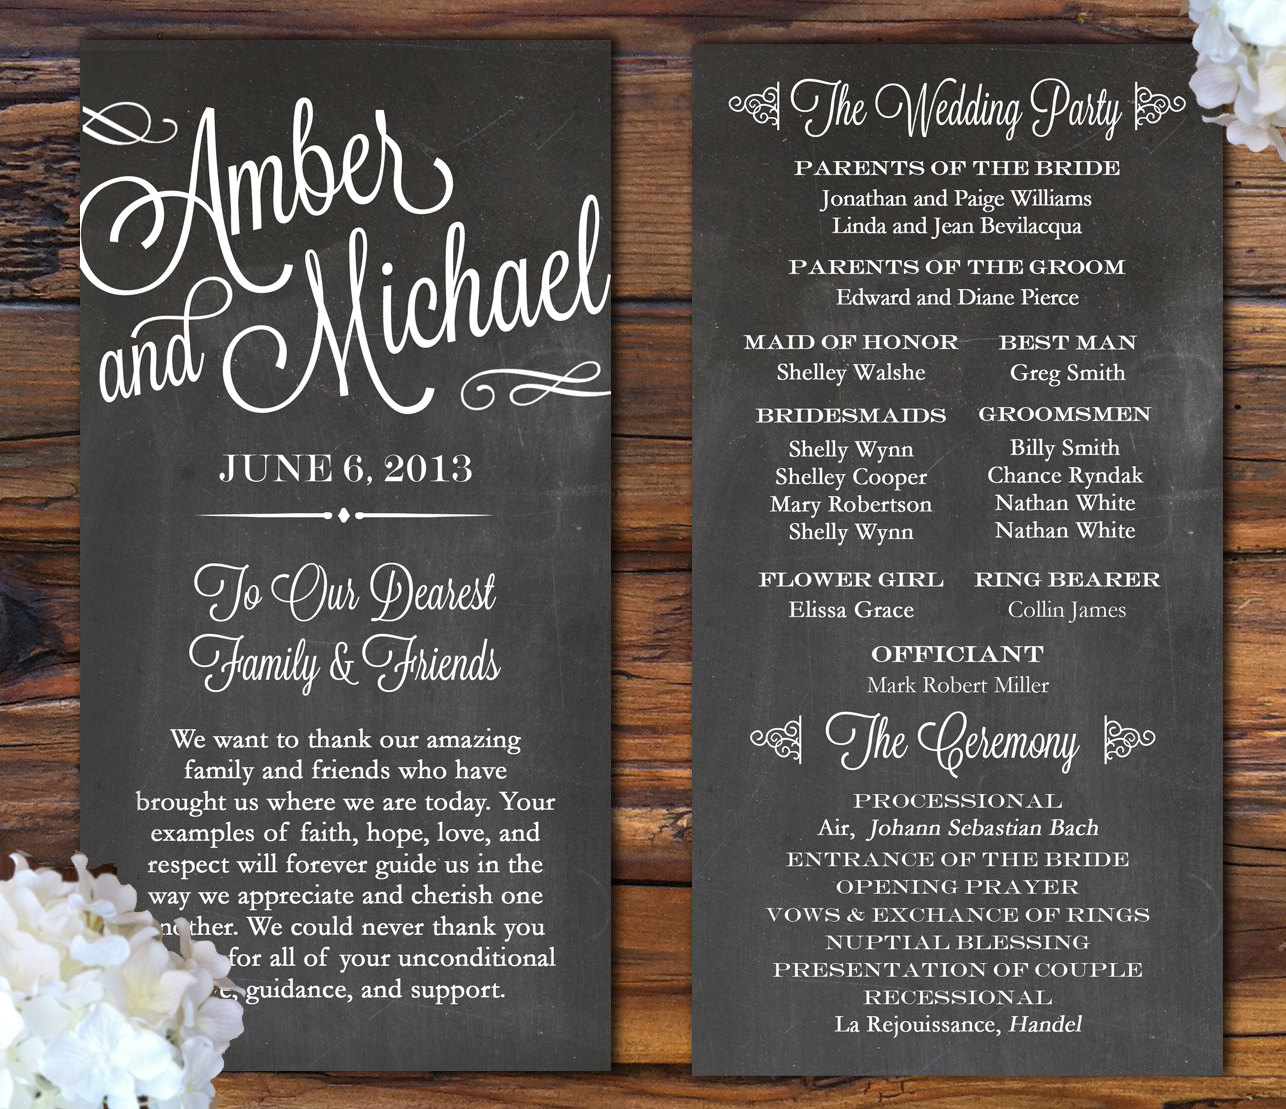 Wedding Programs: 7 Pretty Perfect Wedding Program Ideas